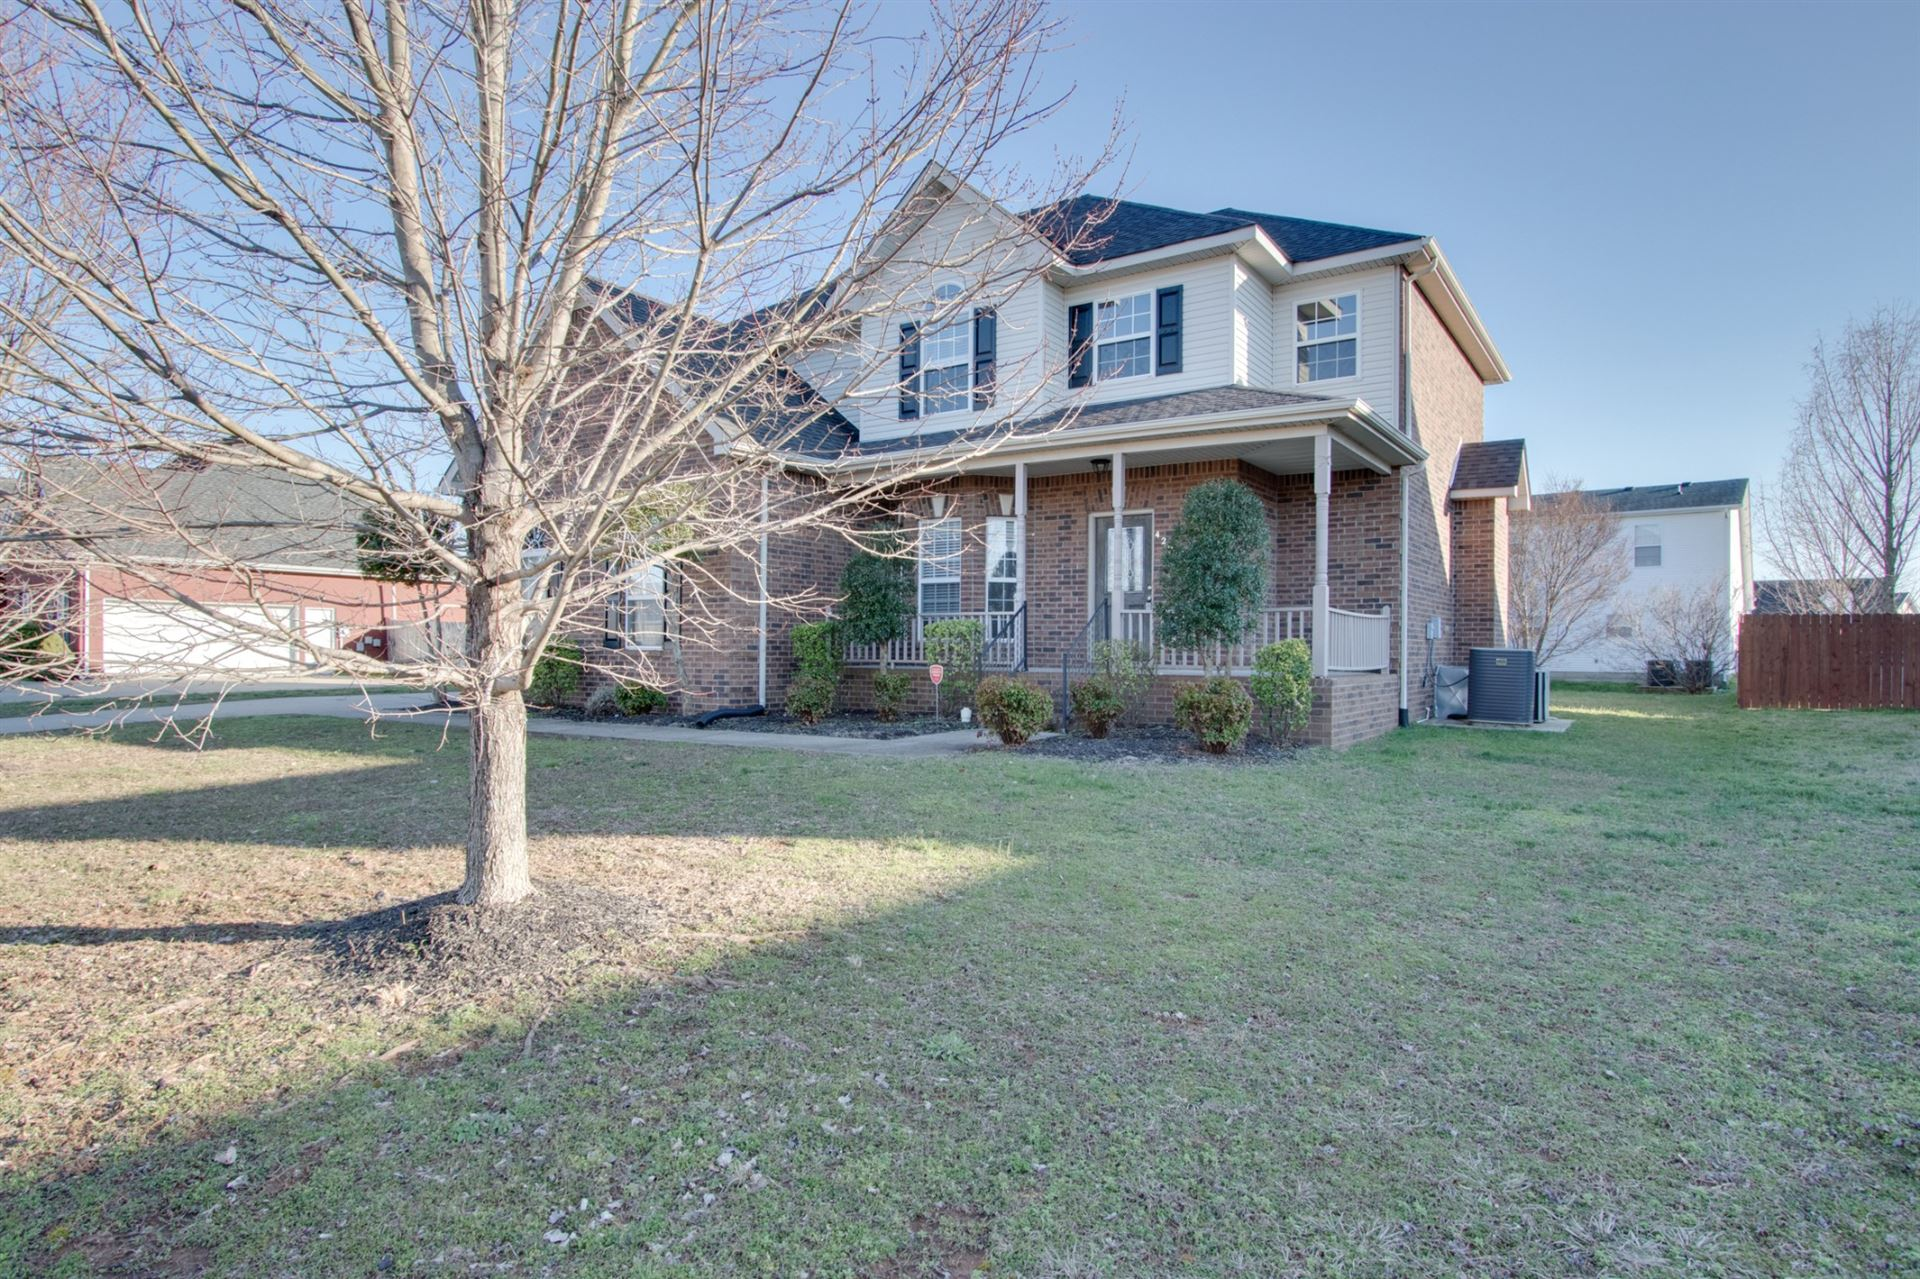 Photo of 429 Indian Park Dr, Murfreesboro, TN 37128 (MLS # 2126226)